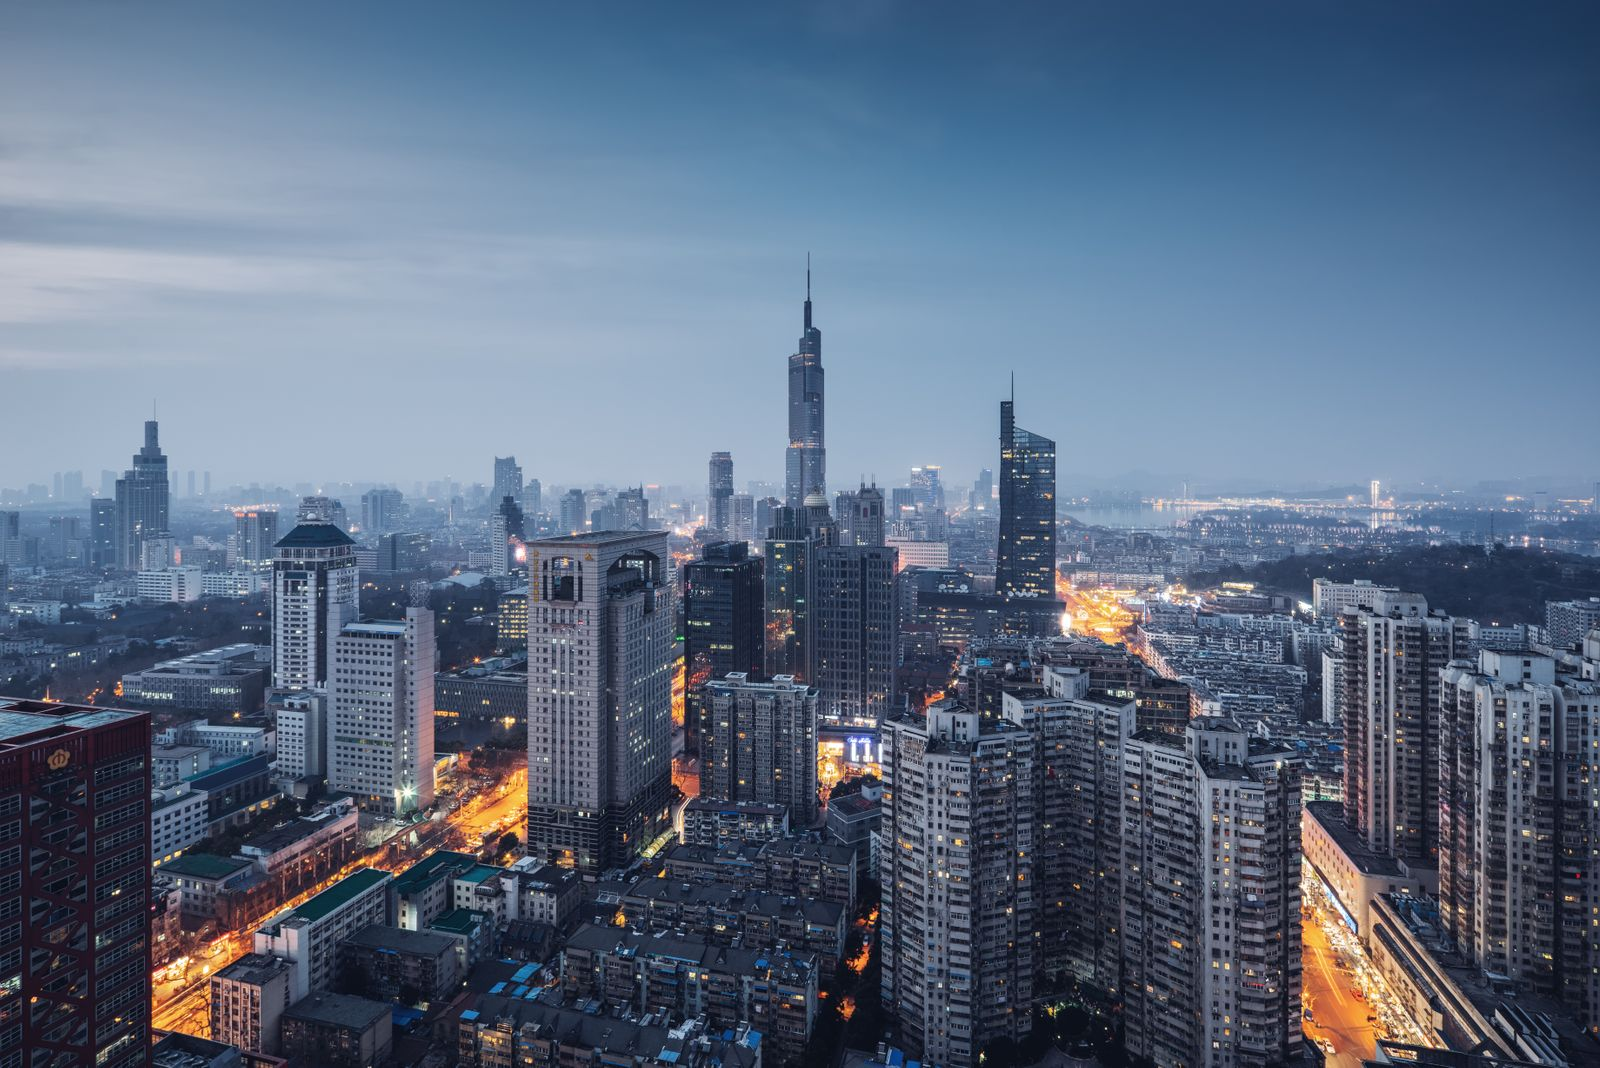 A panoramic view of the nanjing city skyline